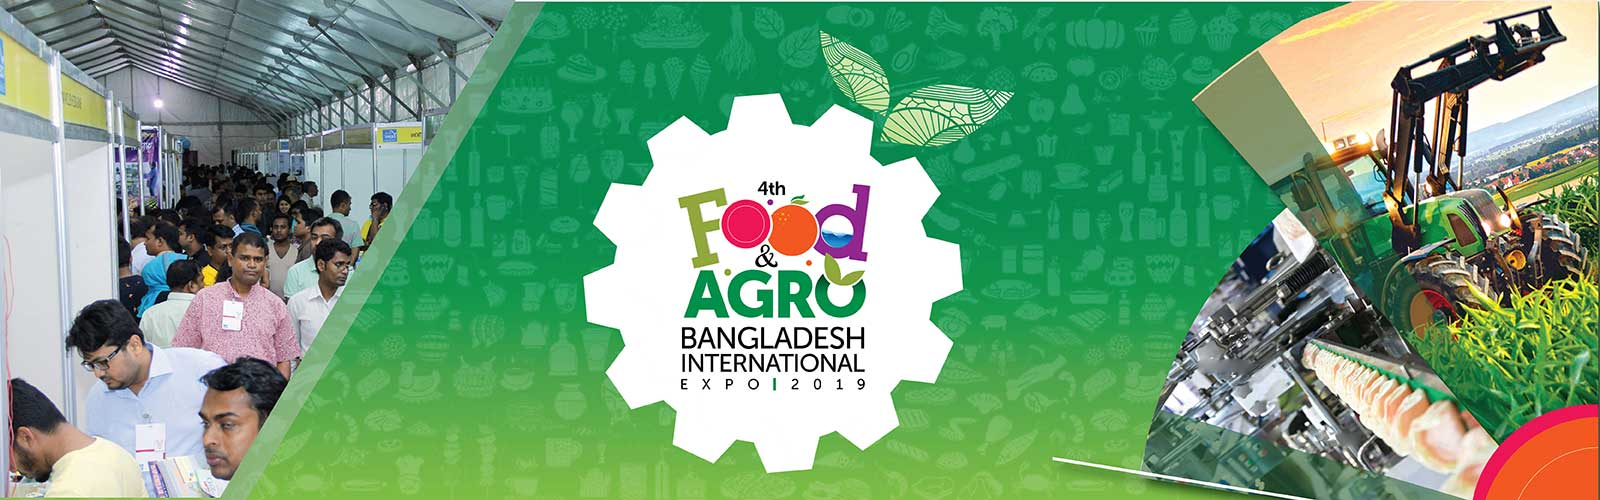 3rd Food and Agro 2018